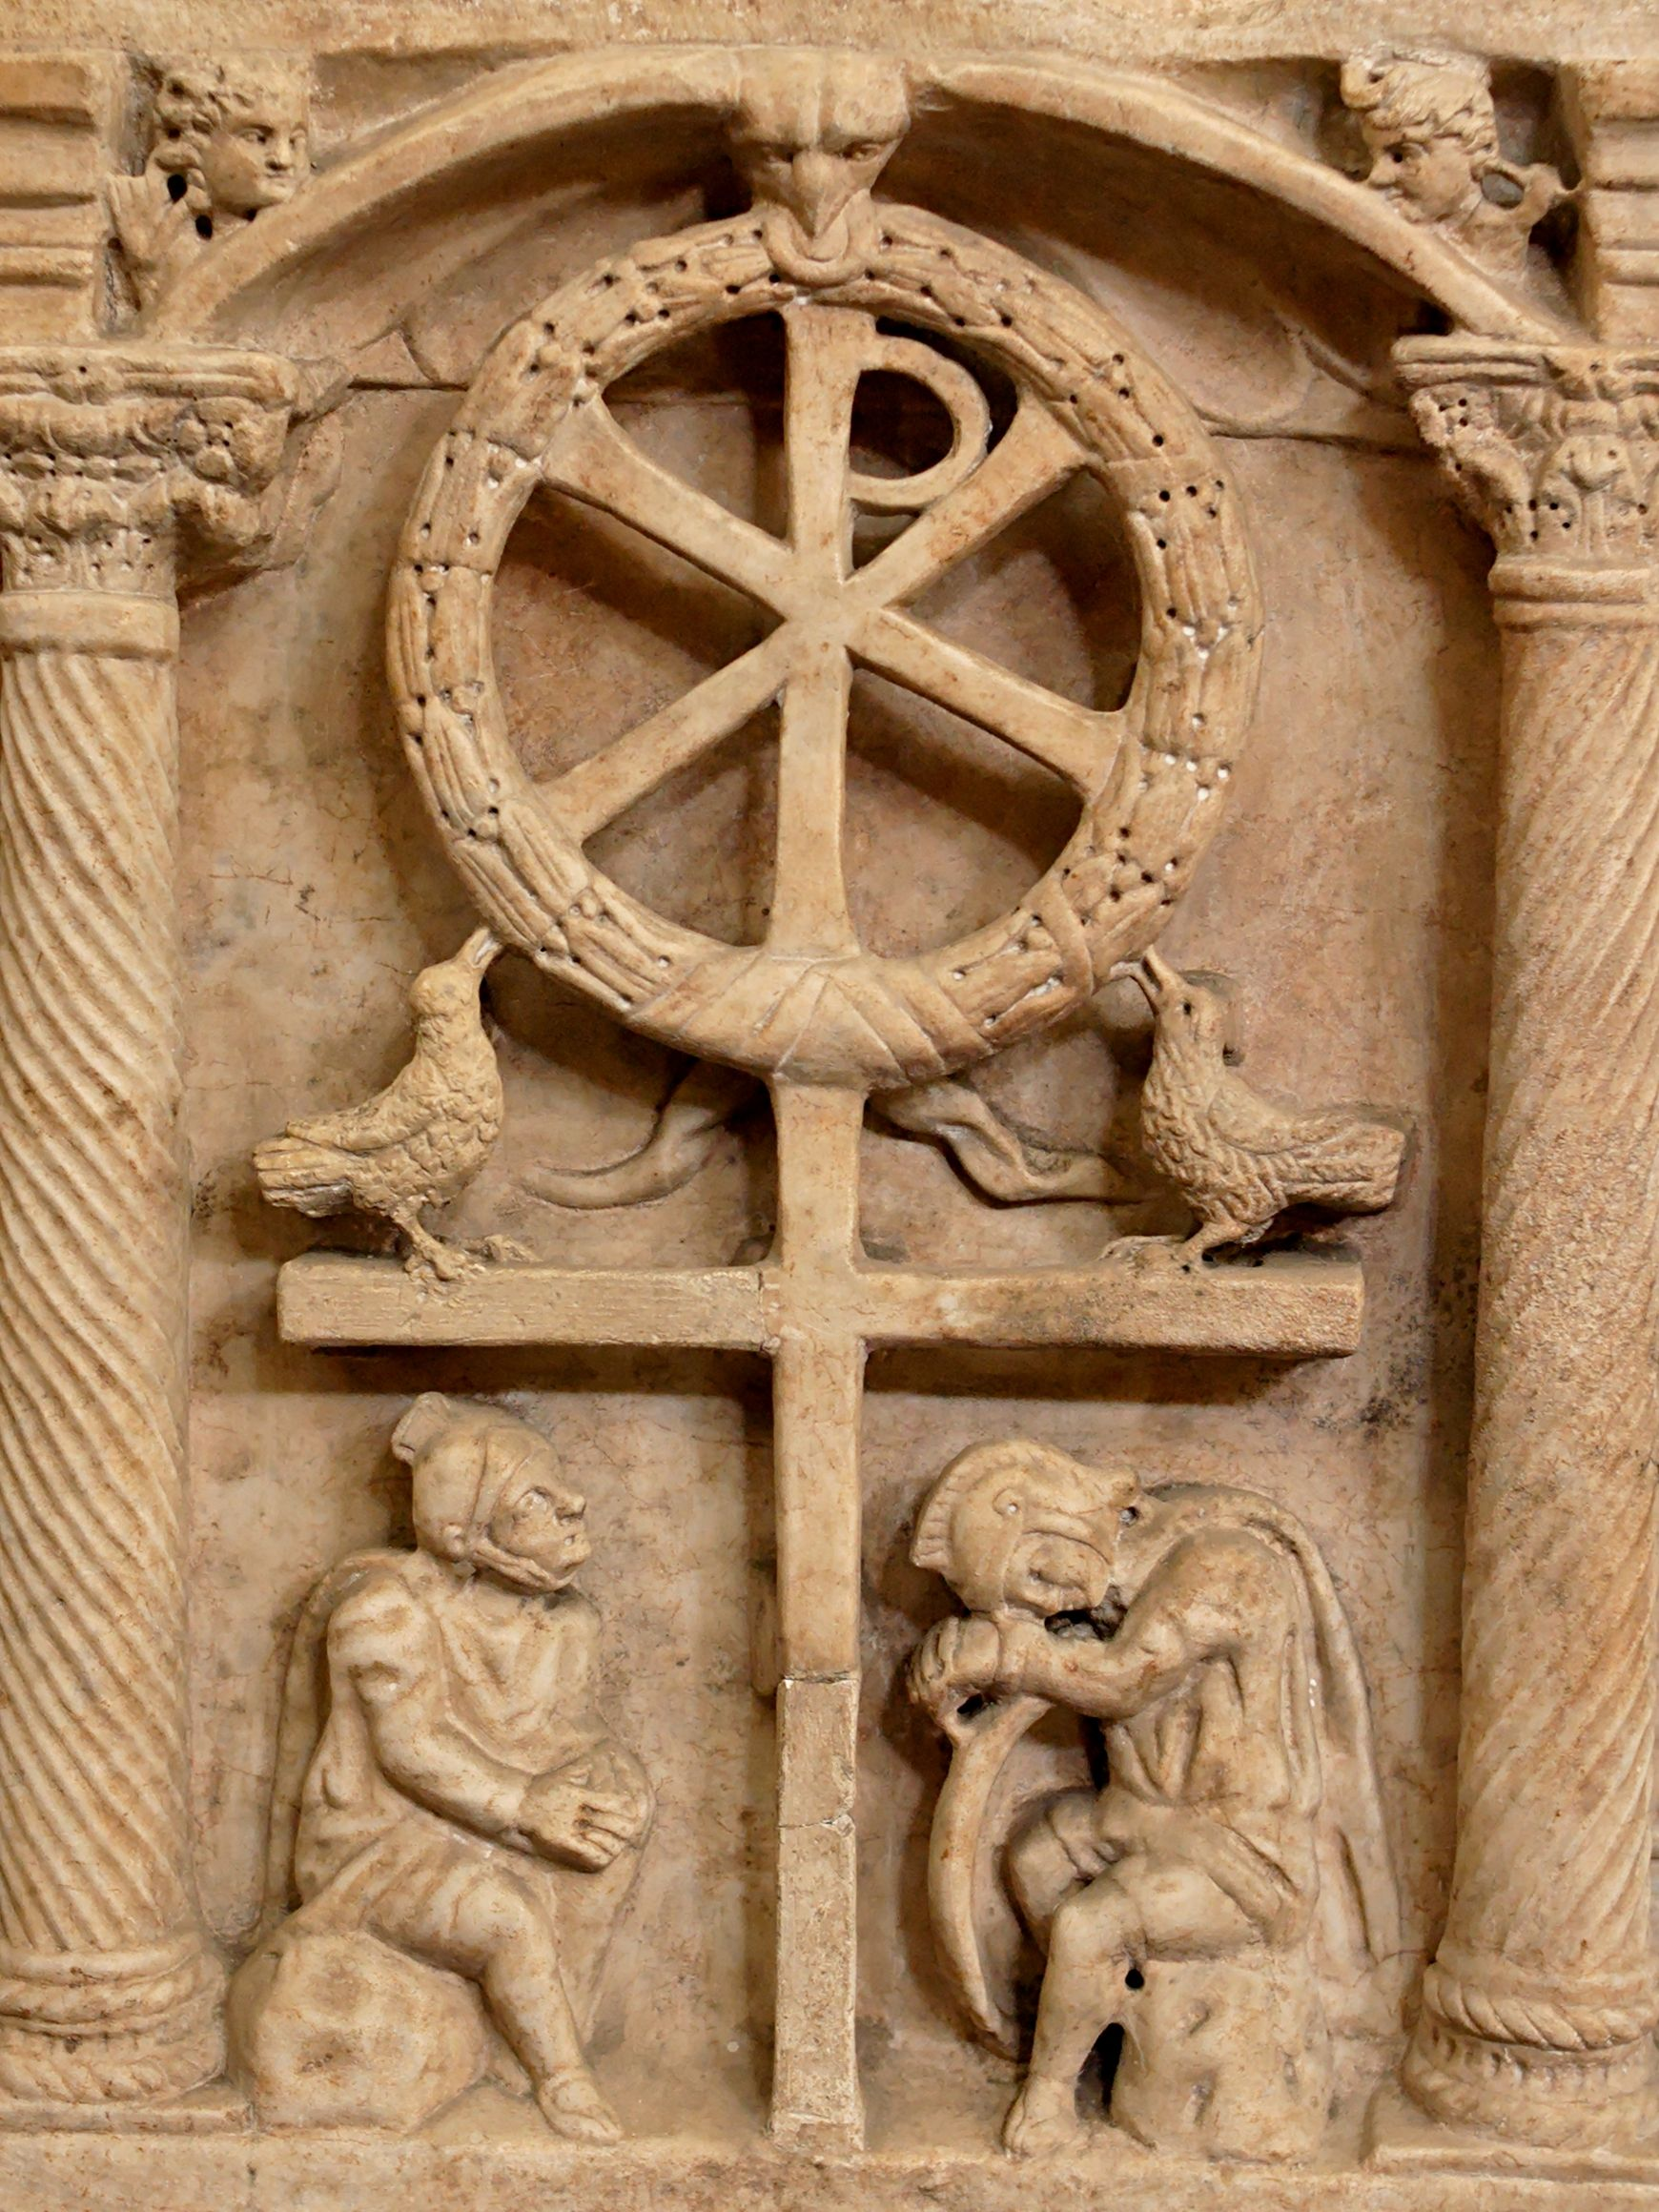 Jesus And The Pagan Gods Chi Rho Roman Soldiers And Pagan Gods